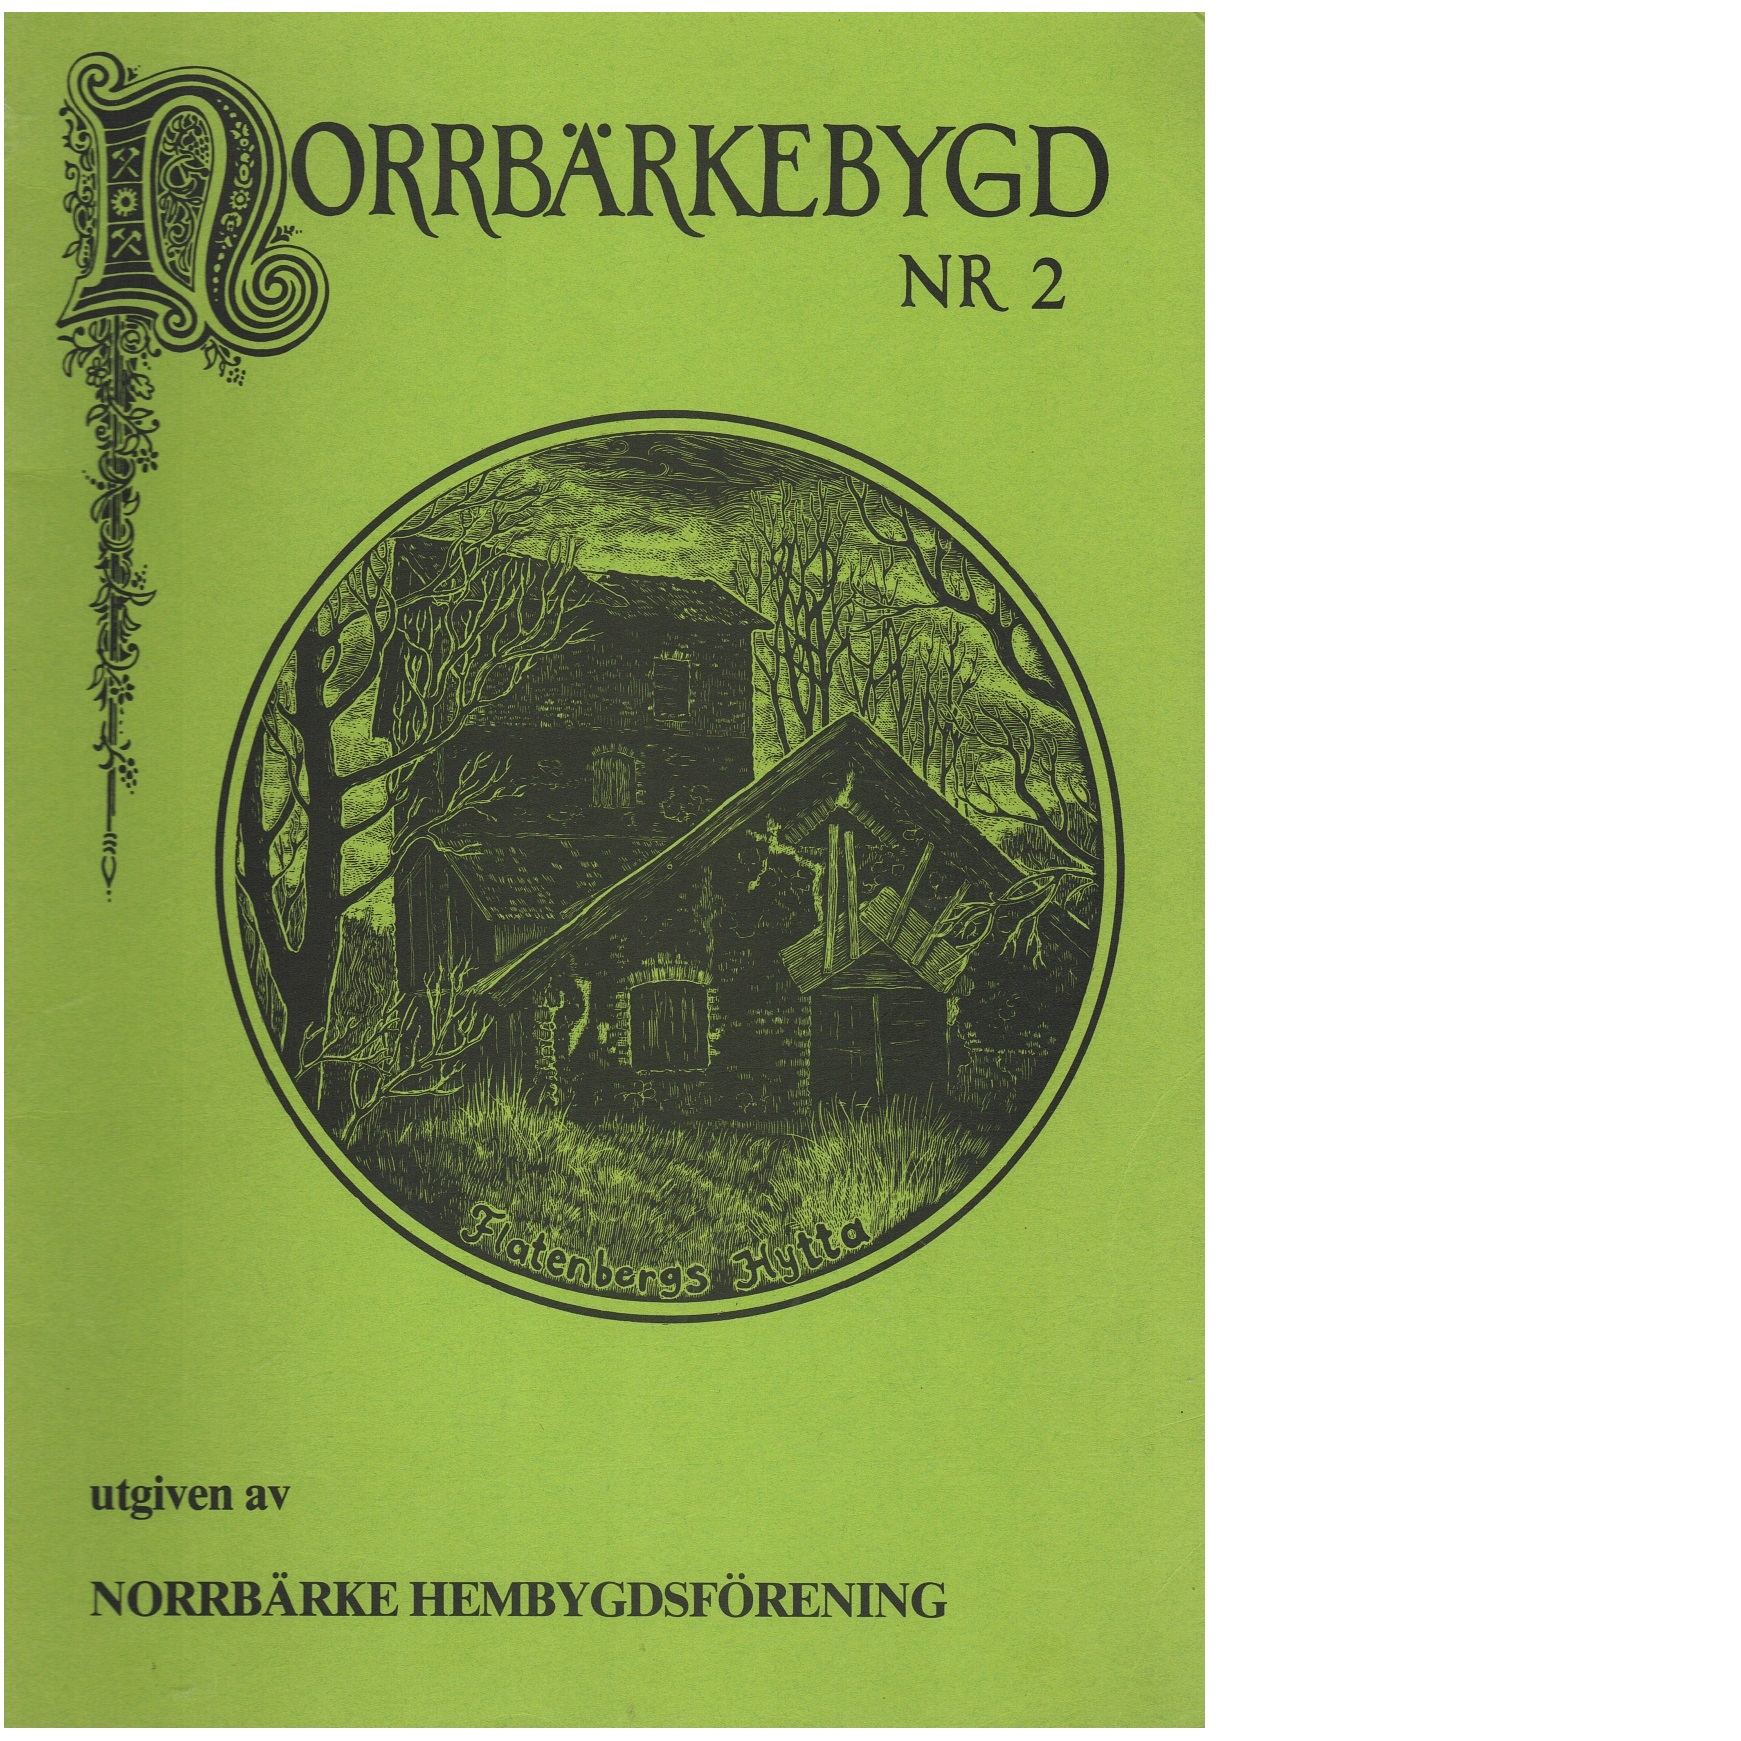 Norrbärkebygd 2 - Red.